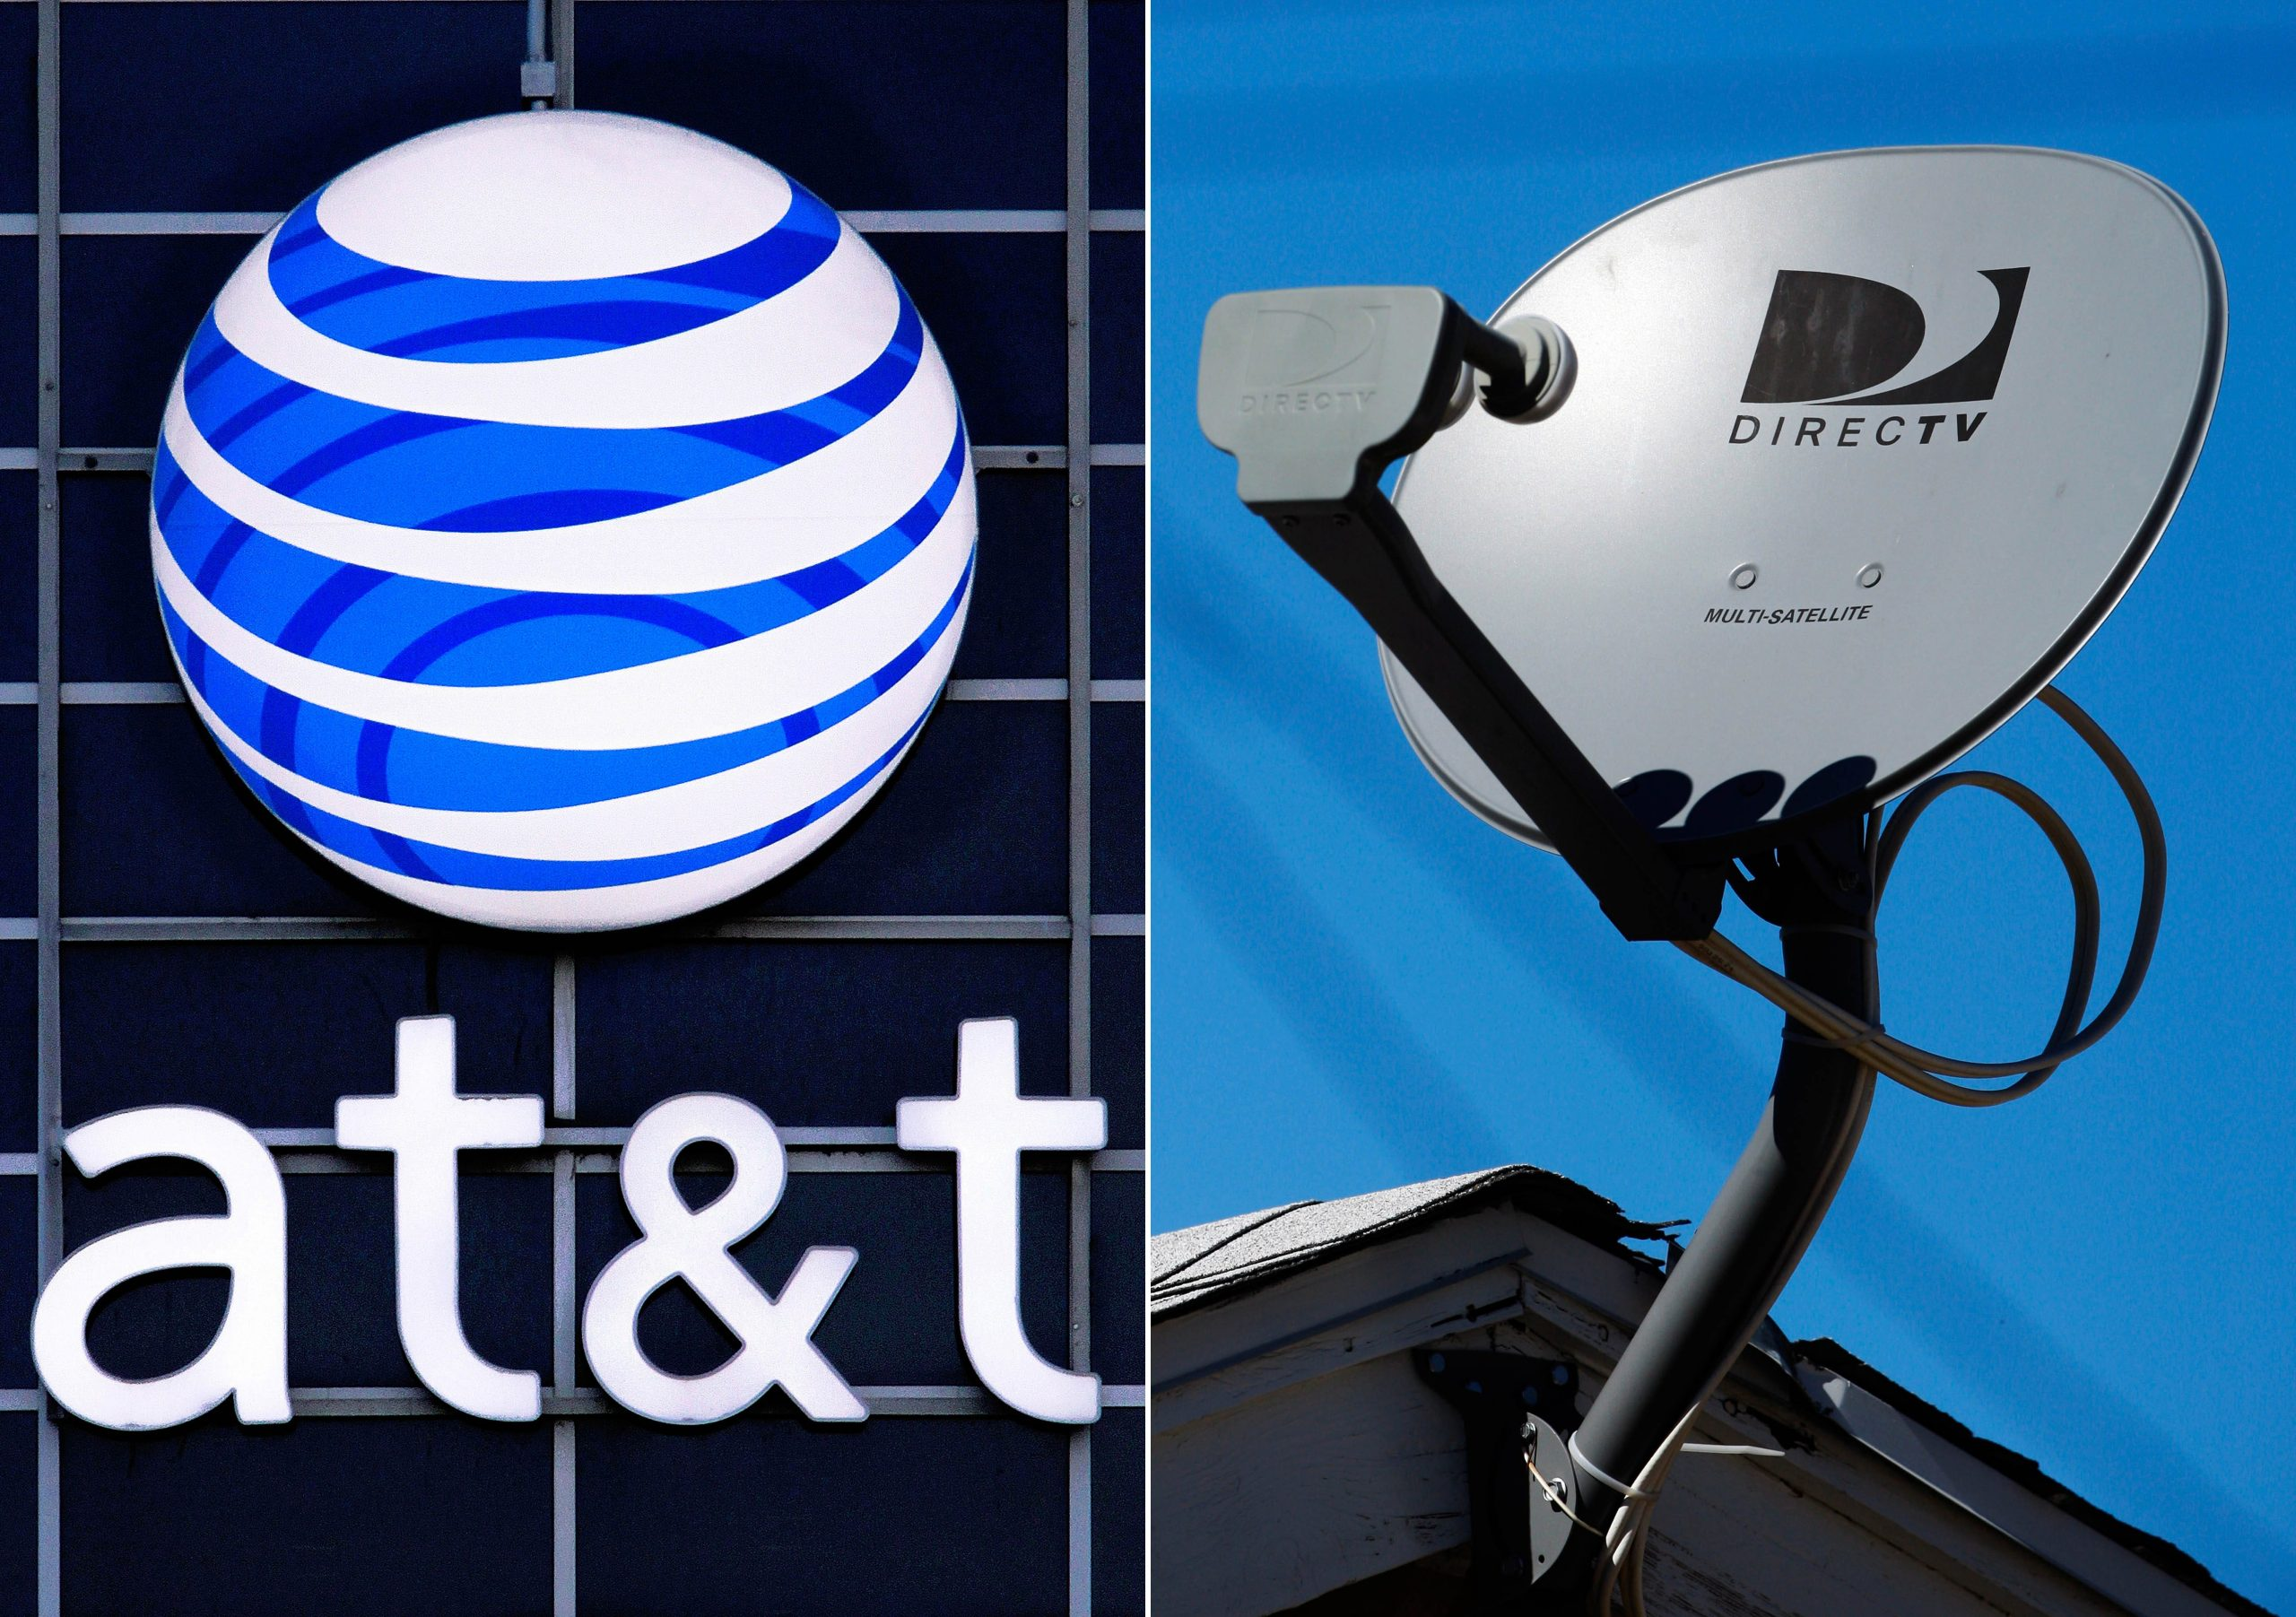 TV standoff ends: AT&T and Tegna reach deal bringing channels back to DirecTV in 51 markets across US